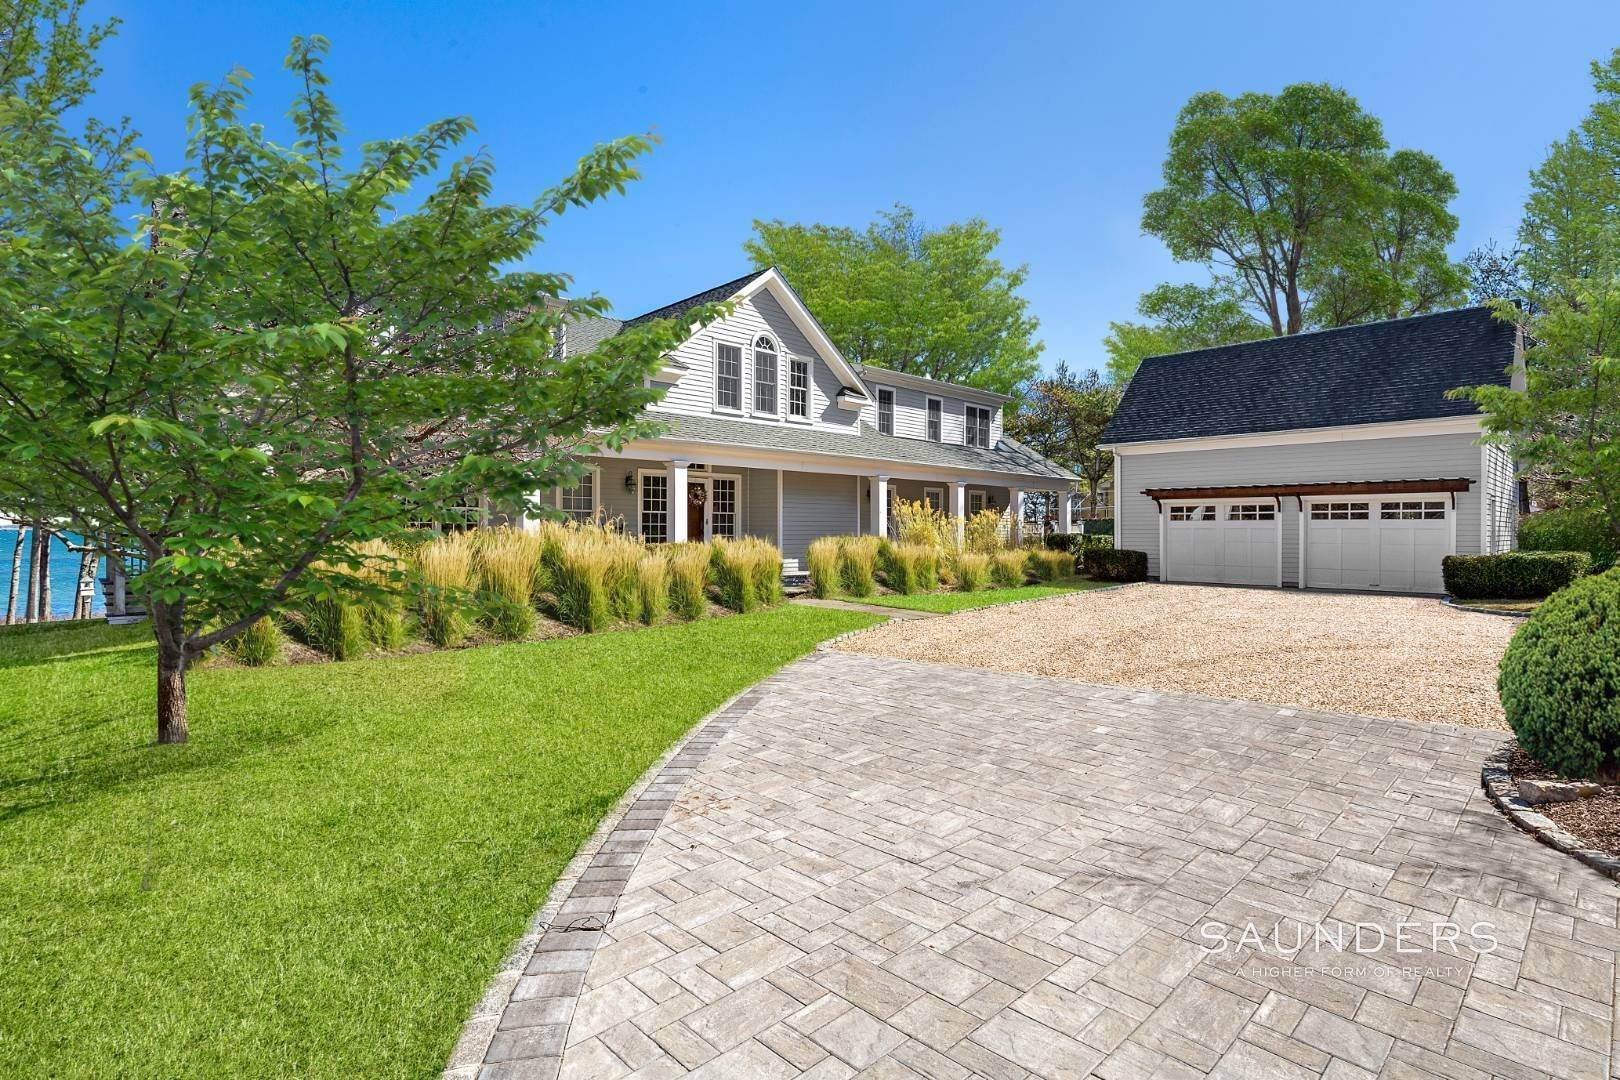 6. Single Family Homes for Sale at Shelter Island Gardiners Bay Beach House With Pool 72 Gardiners Bay Drive, Shelter Island Heights, Shelter Island, NY 11964